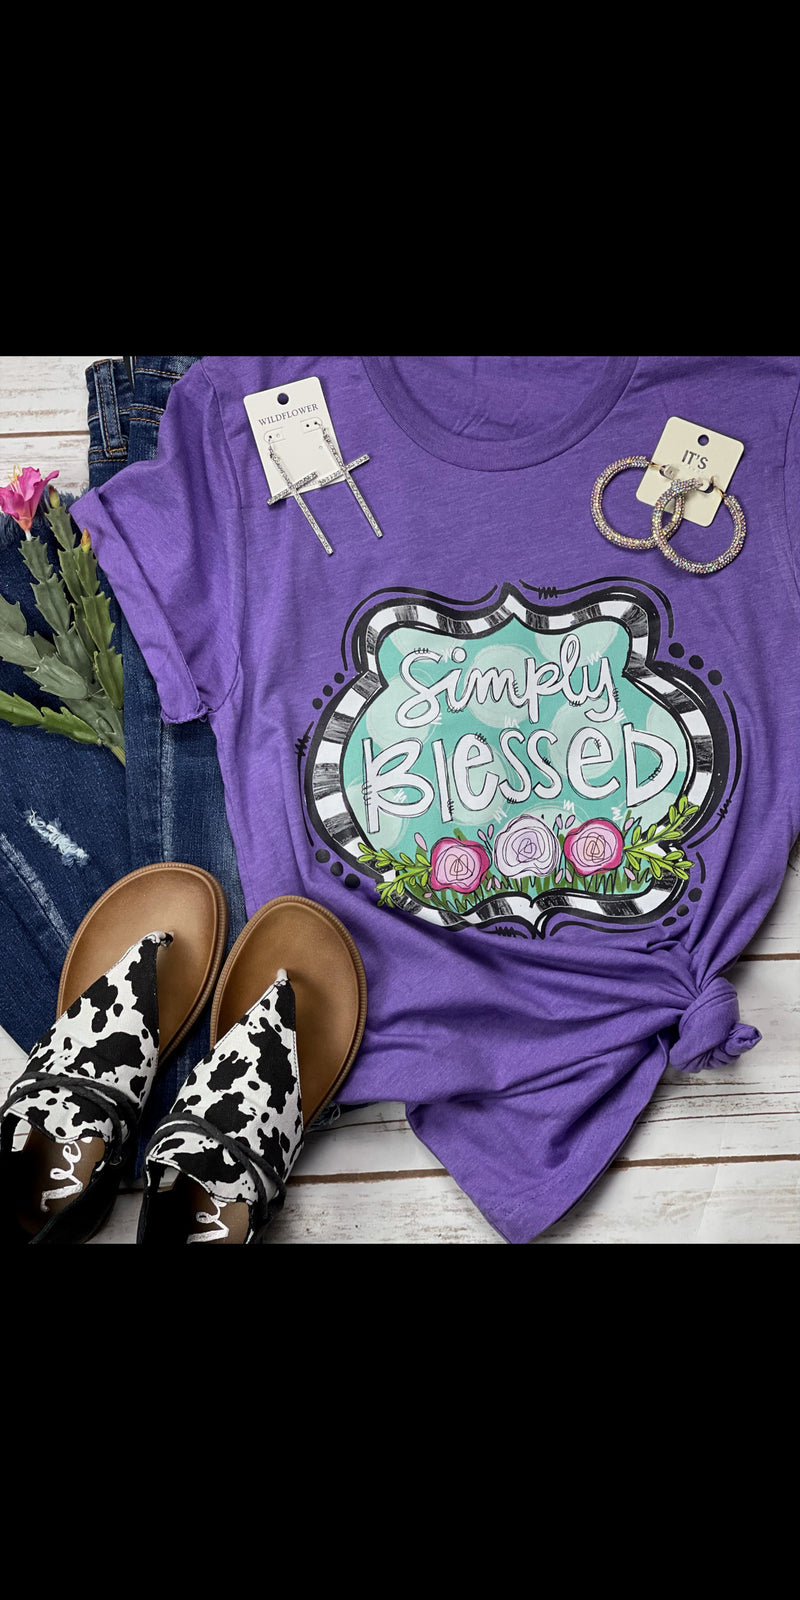 Simply Blessed Top - Also in Plus Size